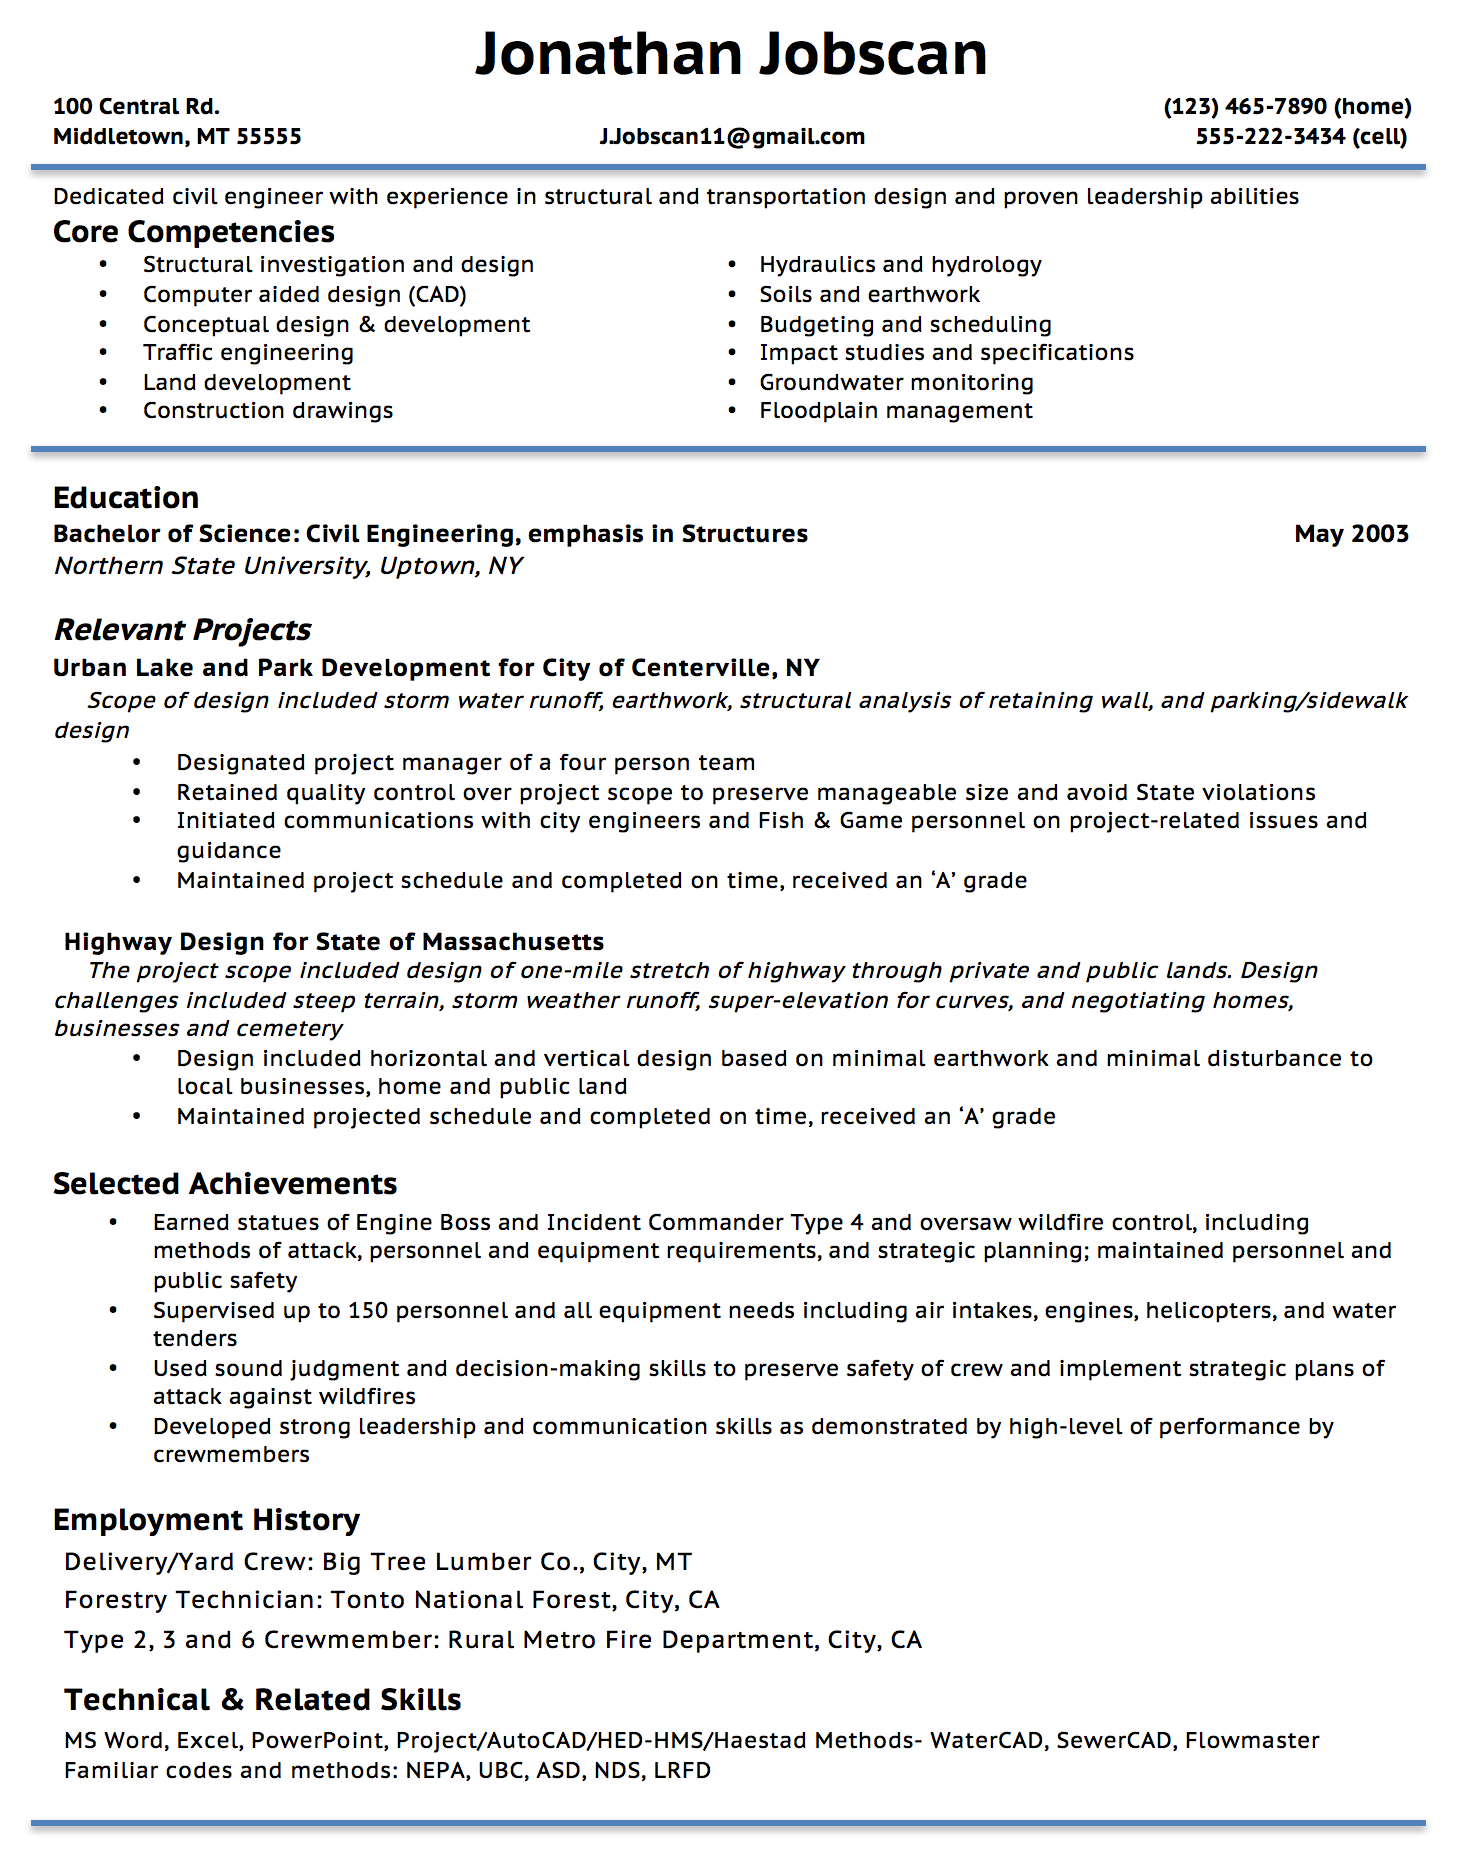 Opposenewapstandardsus  Unusual Resume Writing Guide  Jobscan With Lovable Example Of A Functional Resume Format With Agreeable Example Nursing Resume Also Cv Resume Builder In Addition Optimal Resume Toledo And Resume Letters As Well As Student Athlete Resume Additionally Process Engineer Resume From Jobscanco With Opposenewapstandardsus  Lovable Resume Writing Guide  Jobscan With Agreeable Example Of A Functional Resume Format And Unusual Example Nursing Resume Also Cv Resume Builder In Addition Optimal Resume Toledo From Jobscanco